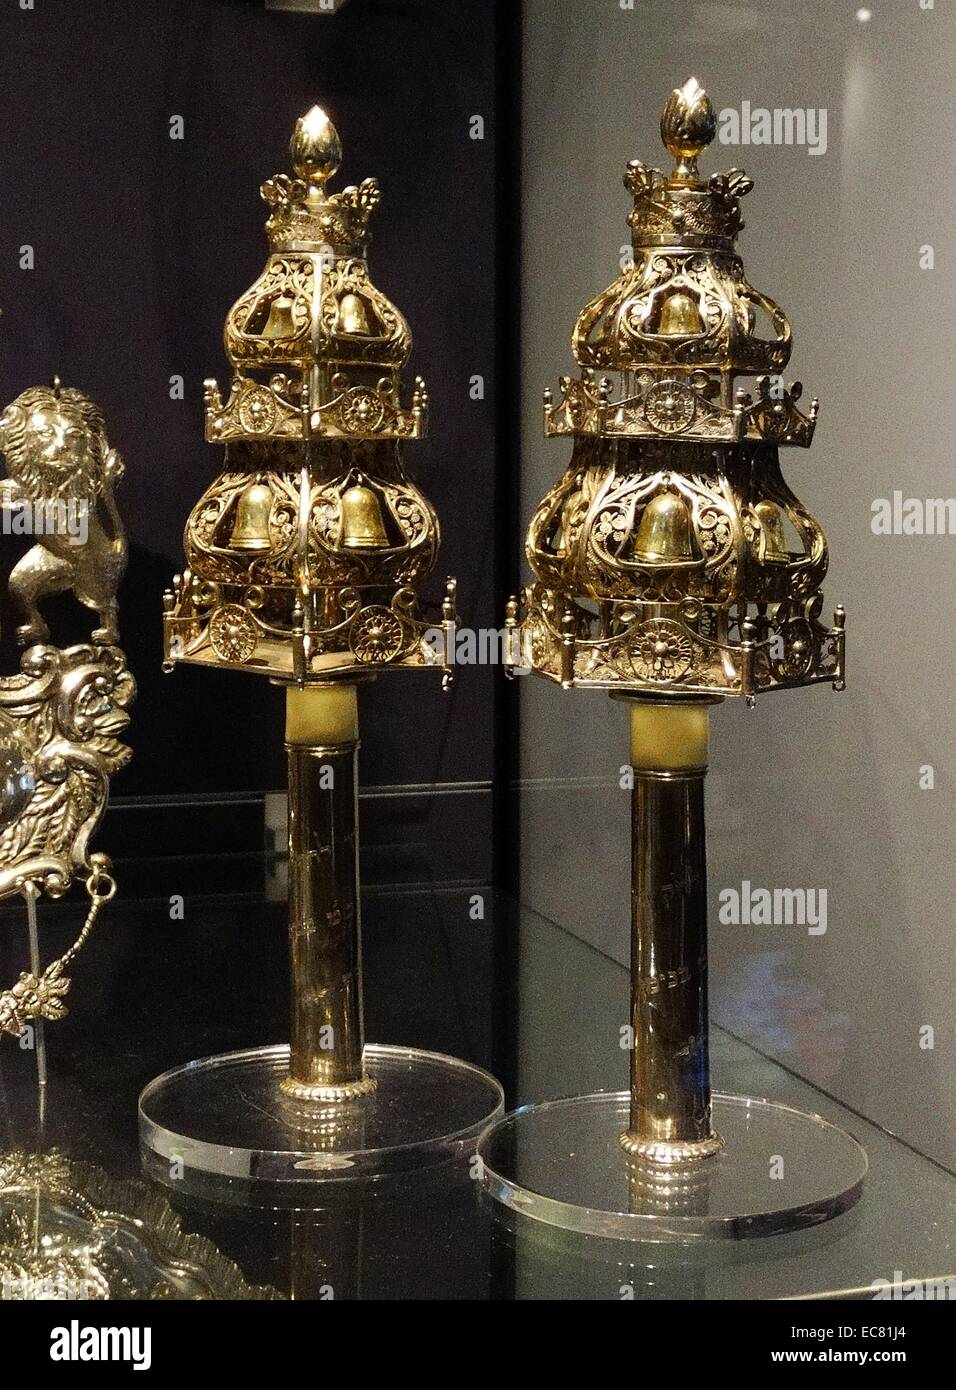 Silver finials (decorative bells attached to the end of Torah Scrolls) - Stock Image